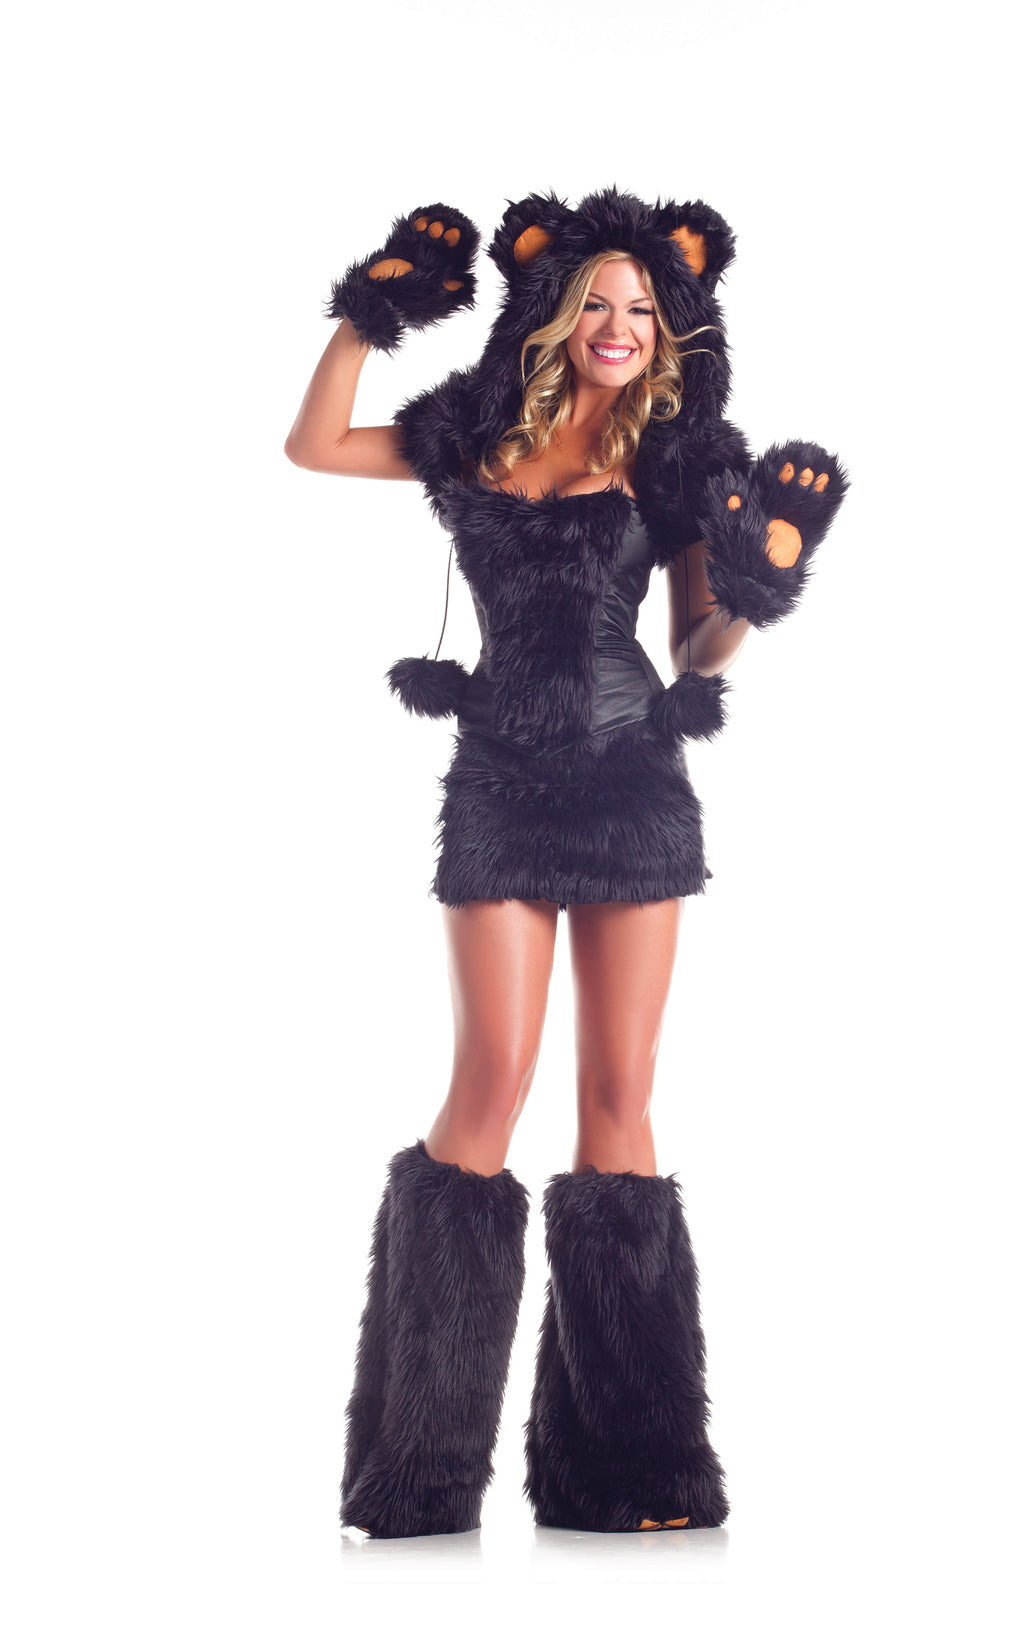 Adult-Women's-8-Piece-Sexy-Black-Bear-Halloween-Party-Costume-With-Hood-&-Leg-Warmers